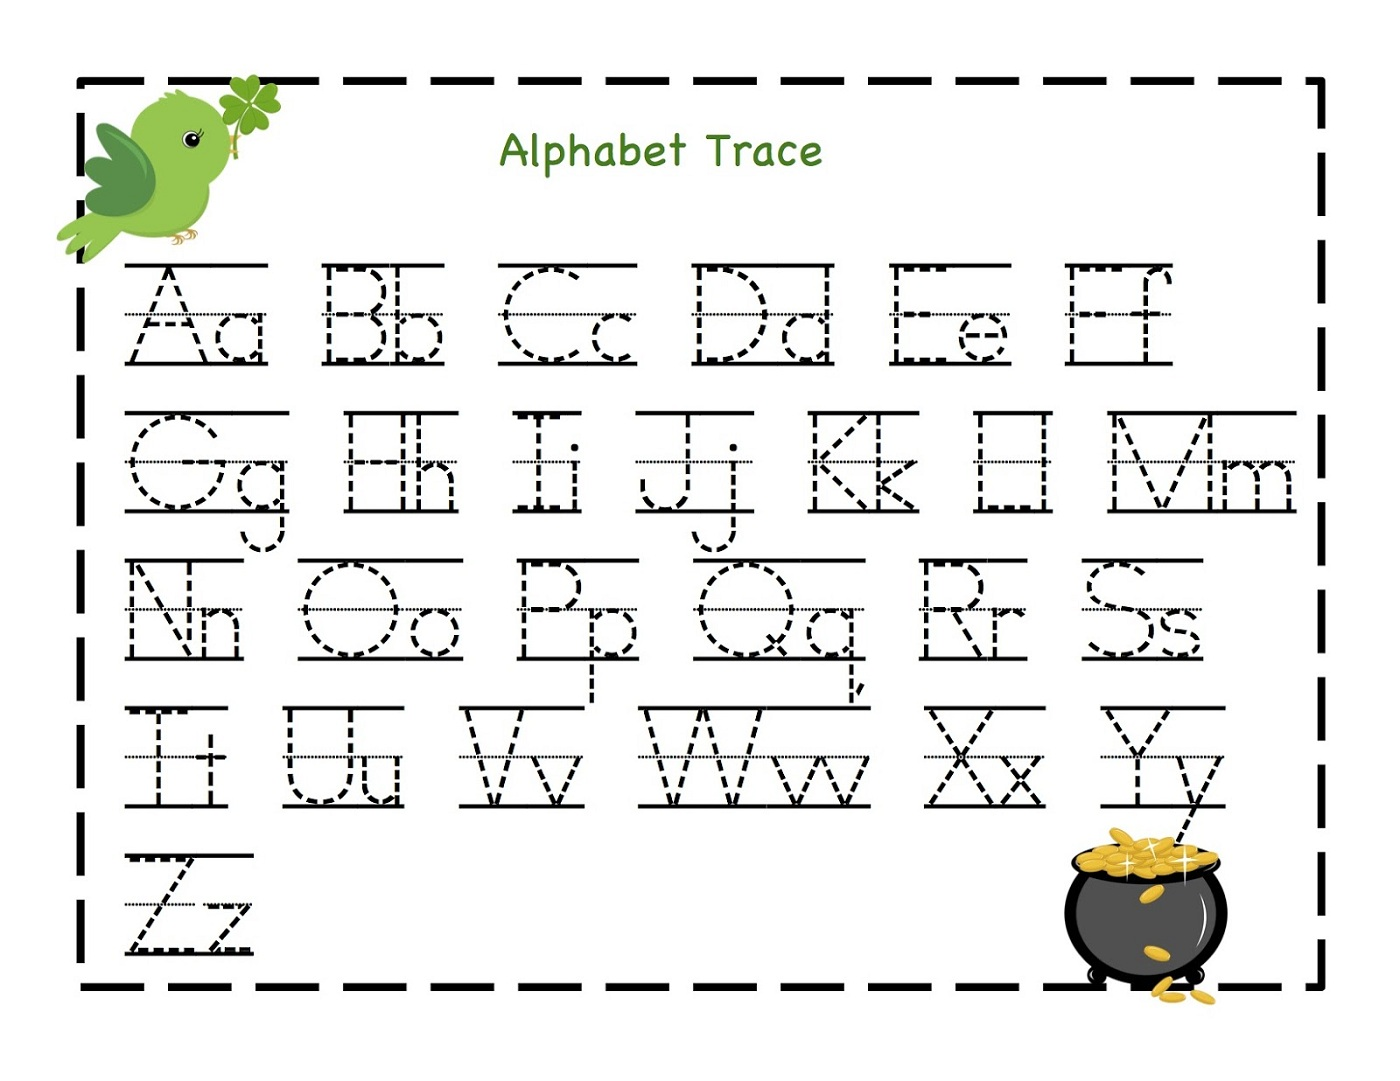 worksheet Letter A Worksheets For Kindergarten kindergarten alphabet worksheets printable activity shelter trace letter to print